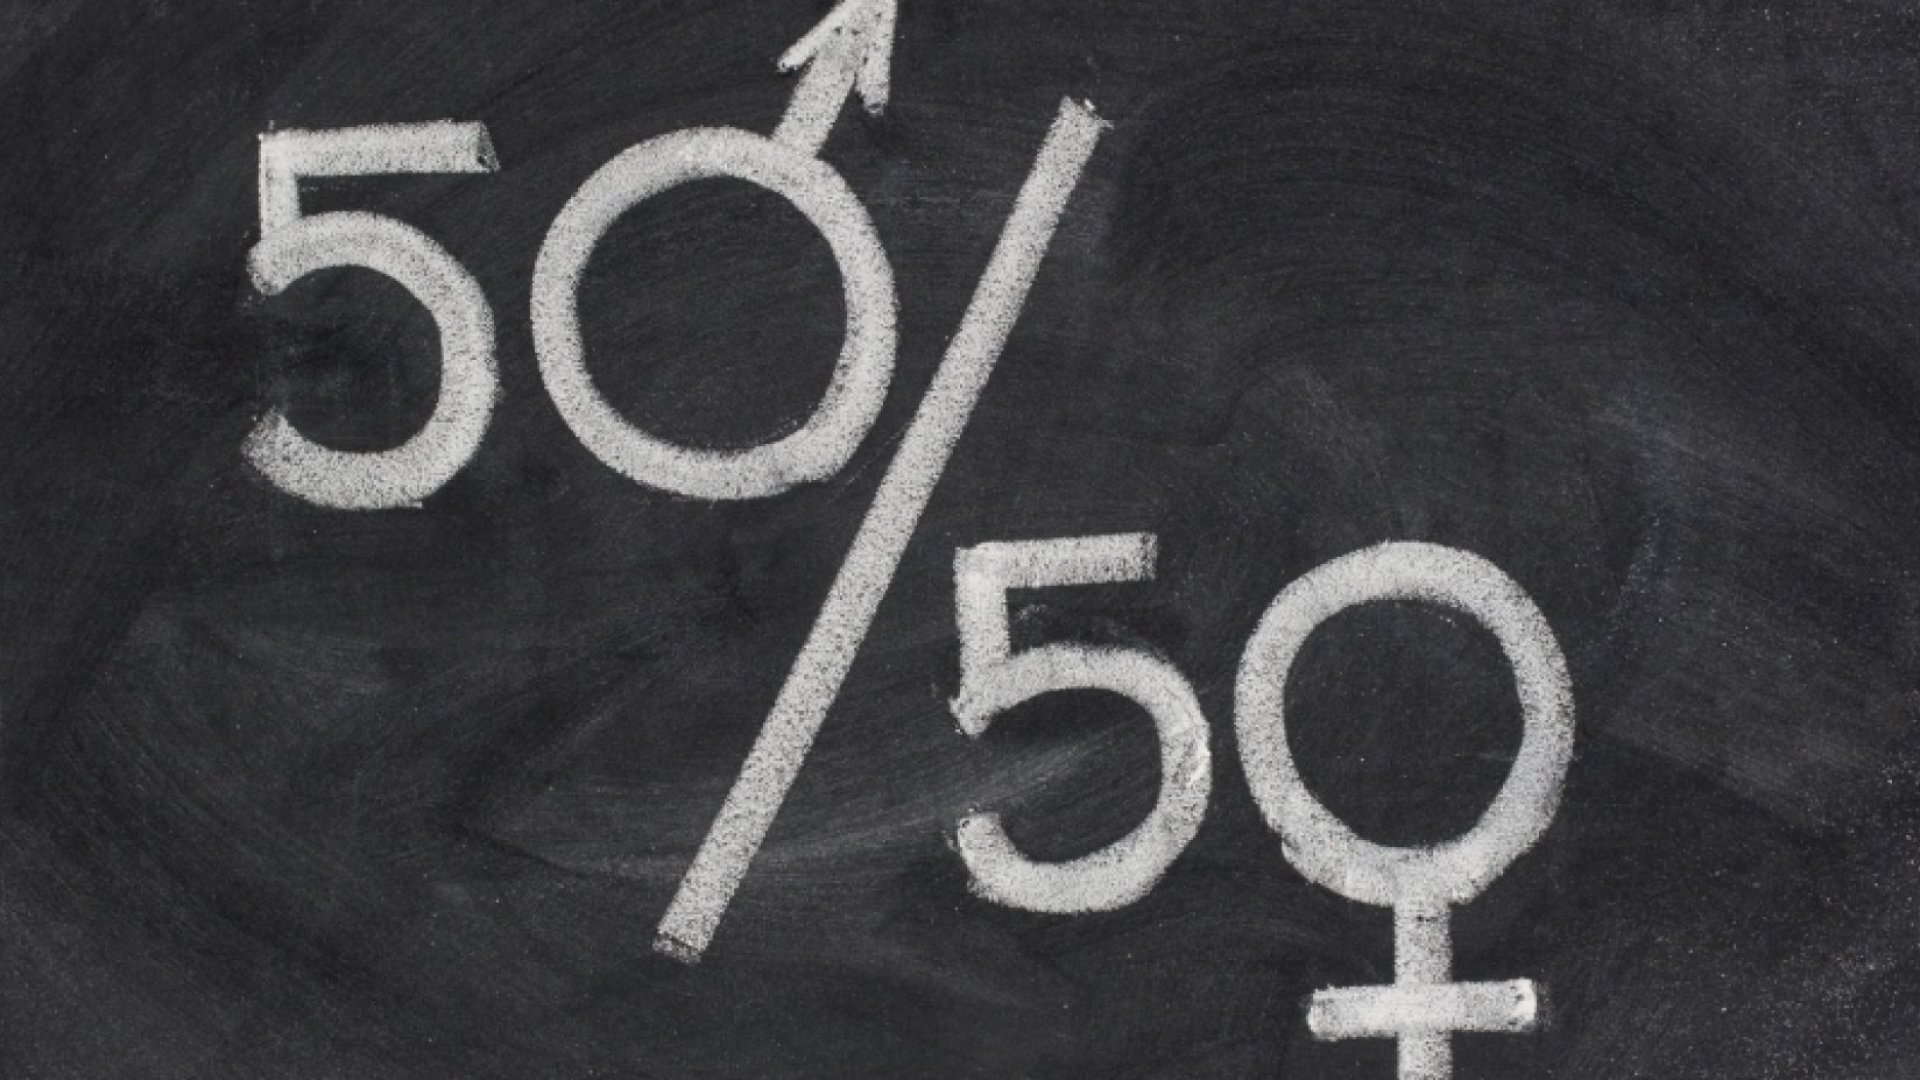 4 Reasons to Accelerate the Race for Gender Equality